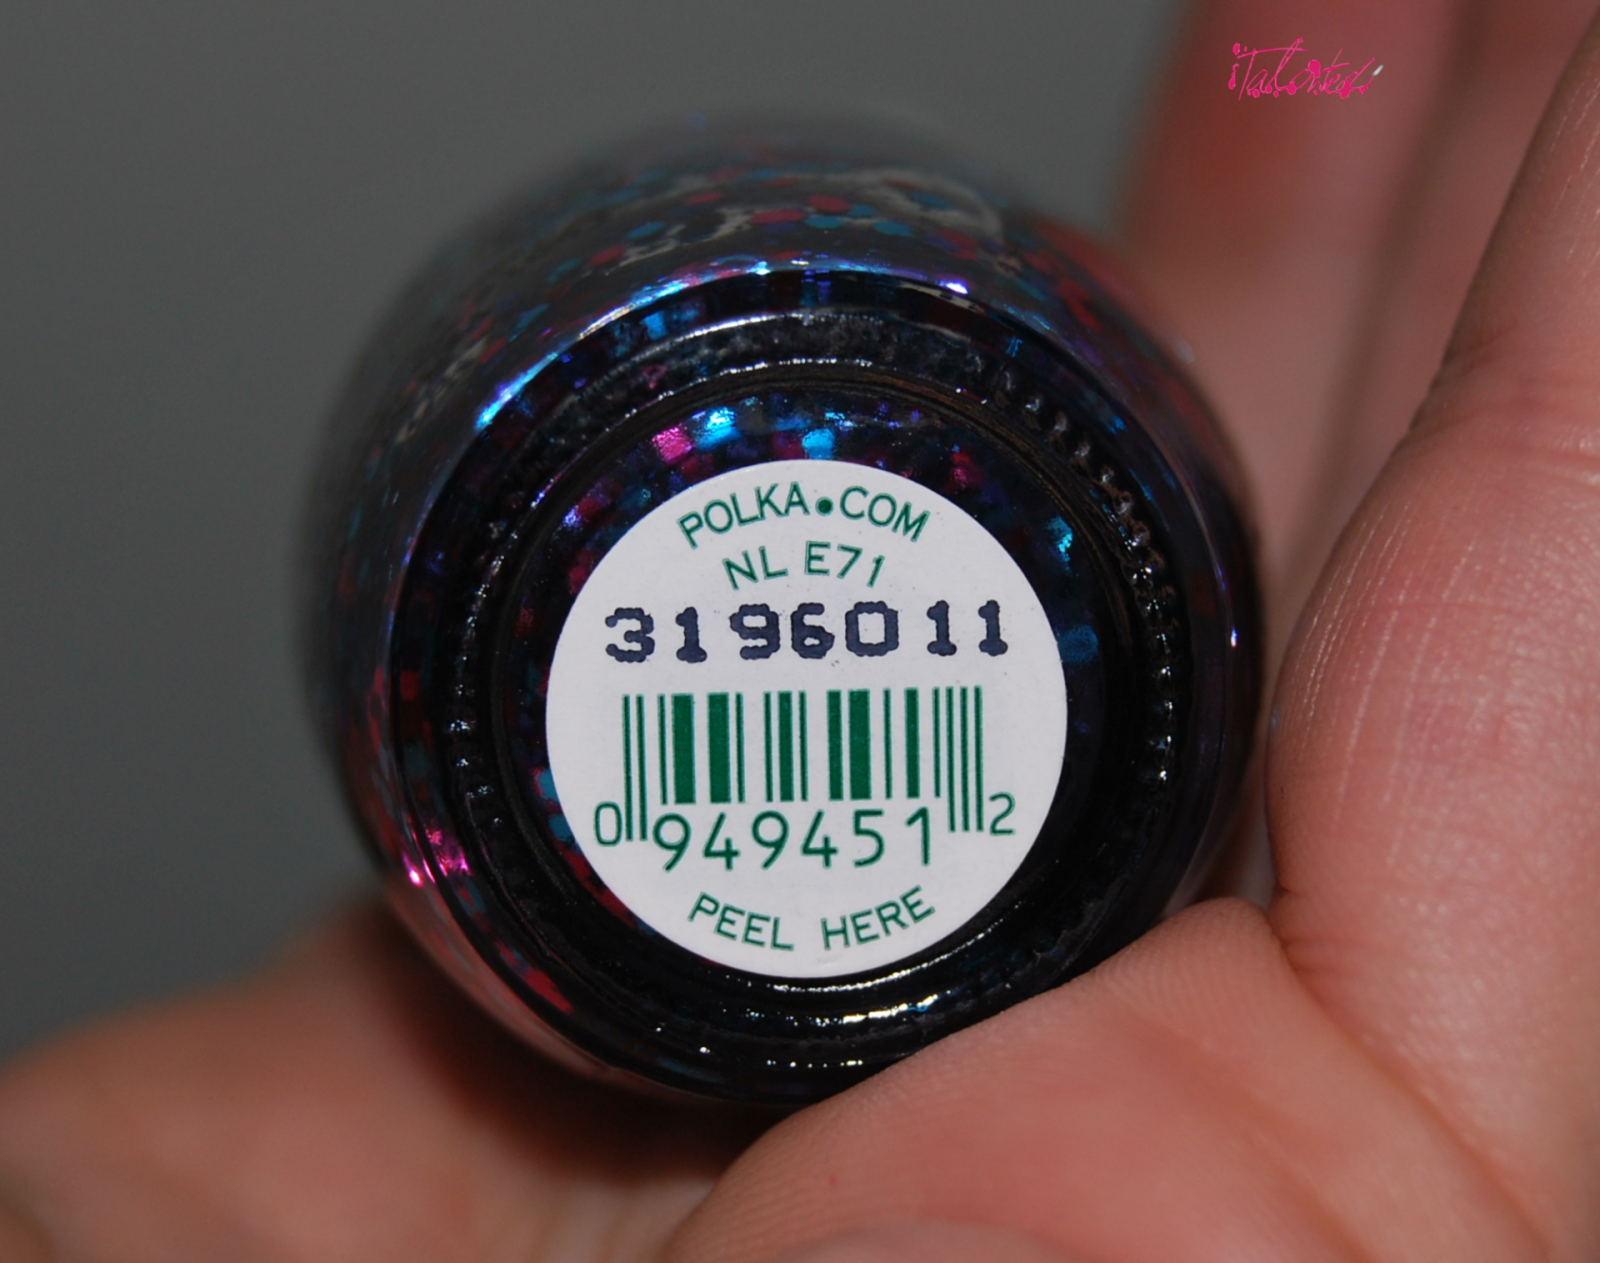 OPI Polka.com Review